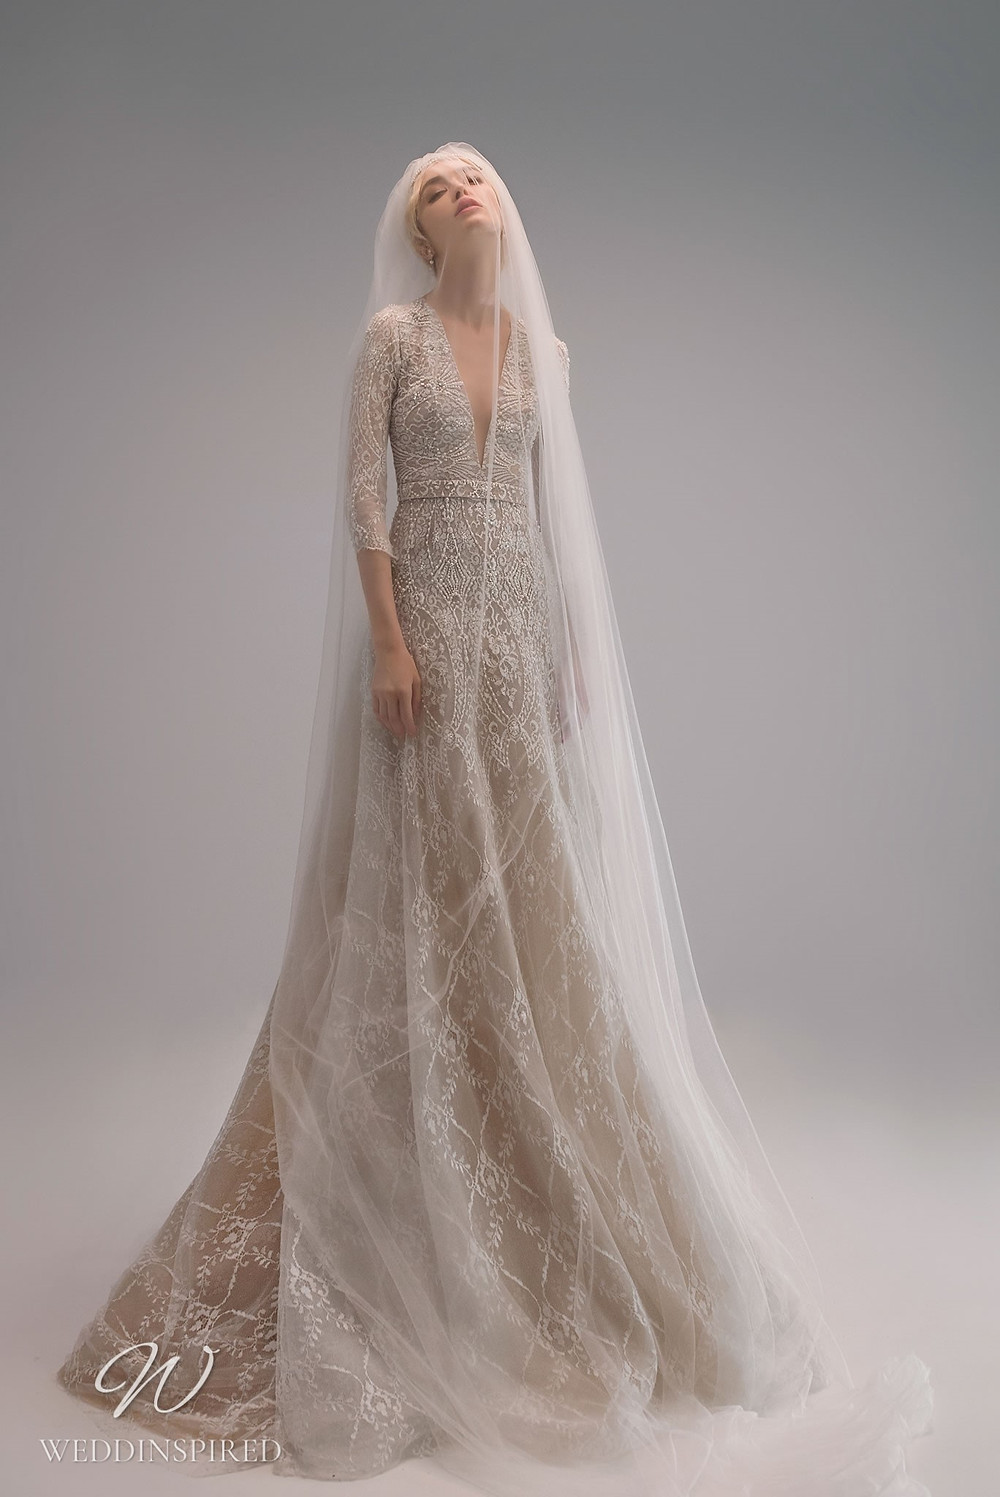 An Ersa Atelier 2021 A-line blush wedding dress with tulle, half sleeves, a v neck and beading